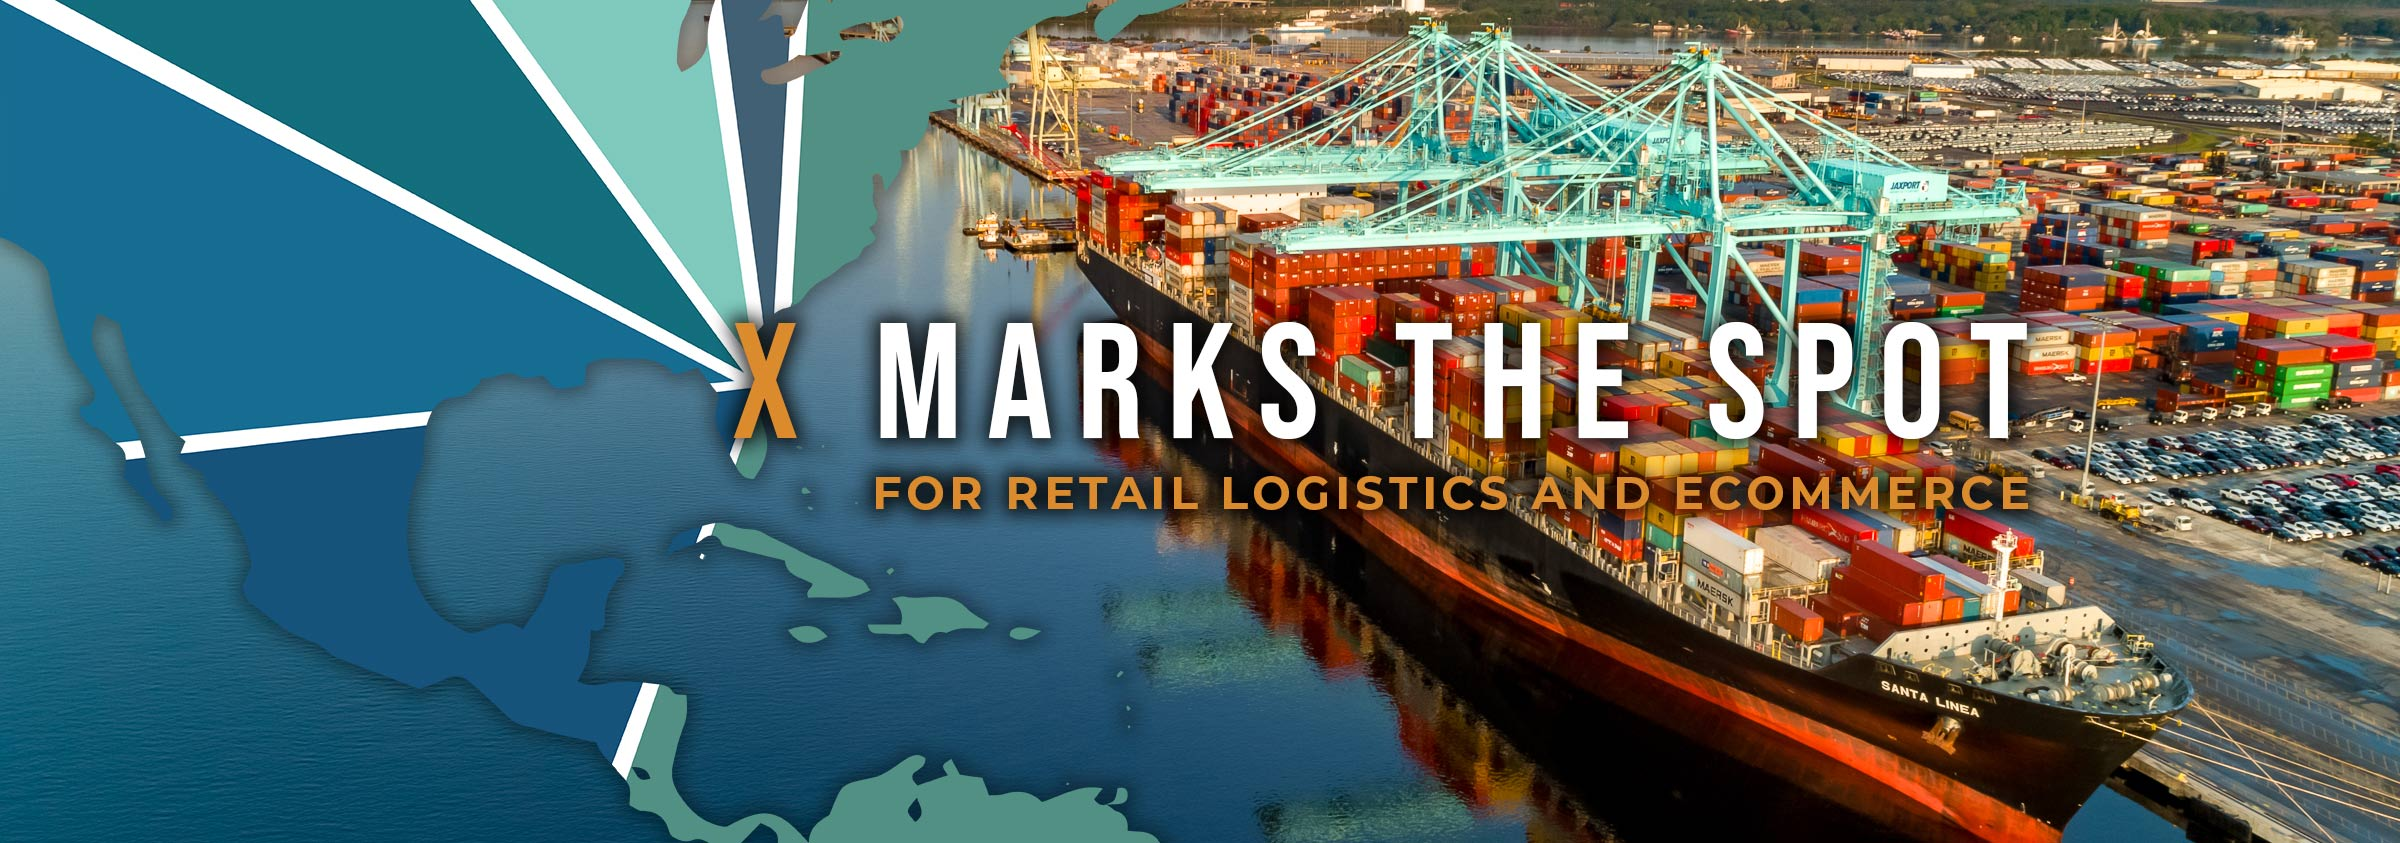 X Marks the Spot for Retail Logistics and Ecommerce